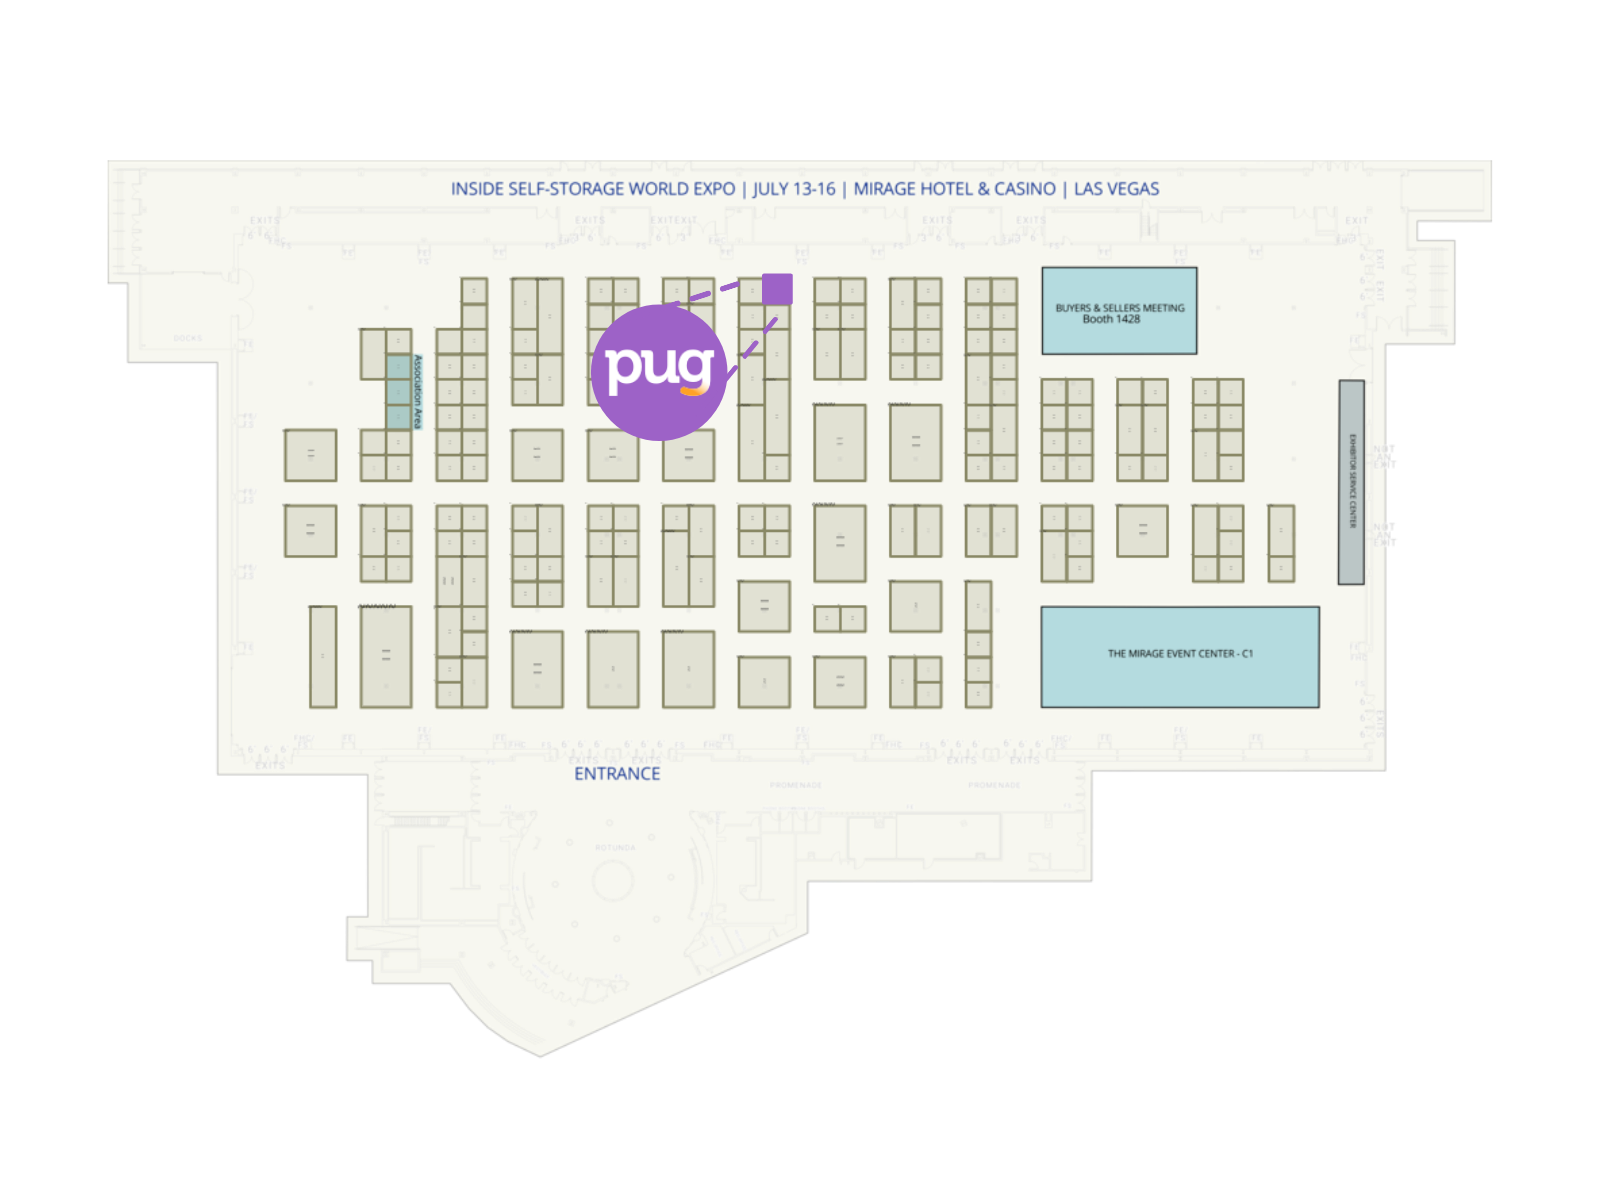 ISS 2021 - booth map